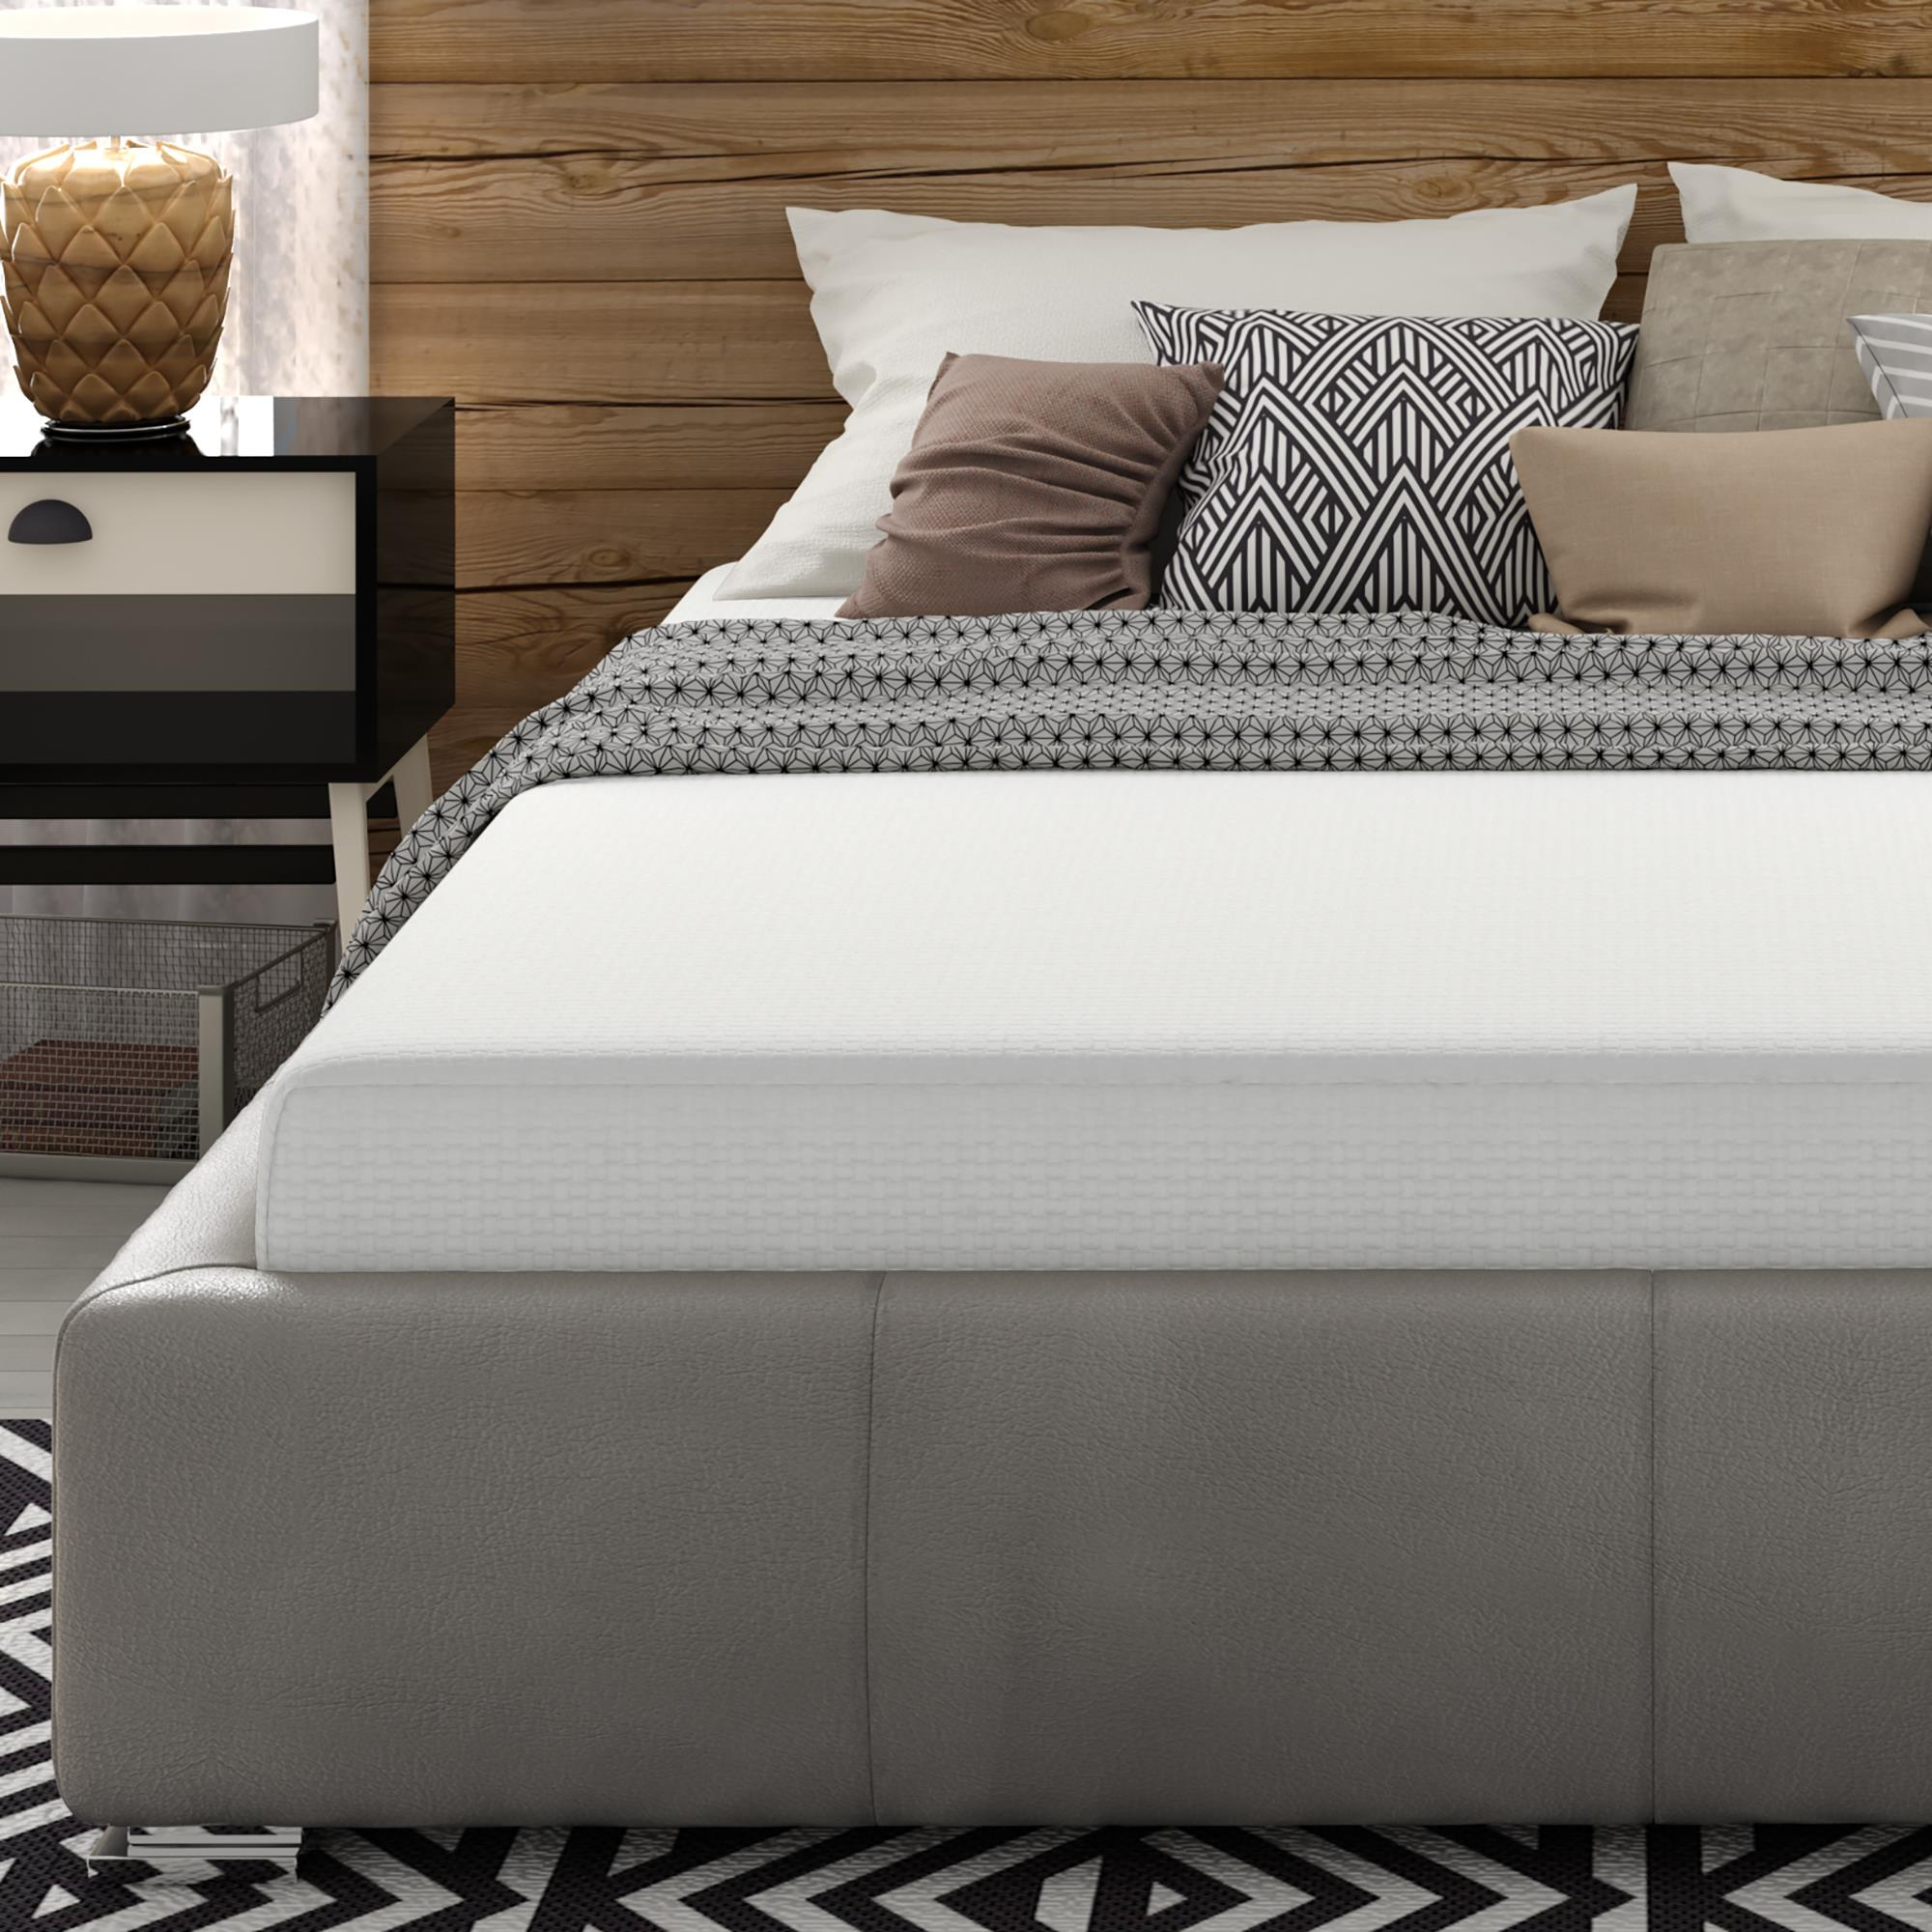 Signature Sleep Gold Series CertiPUR-US 8 inch Memory Foam Mattress, Multiple sizes by Dorel Home Products